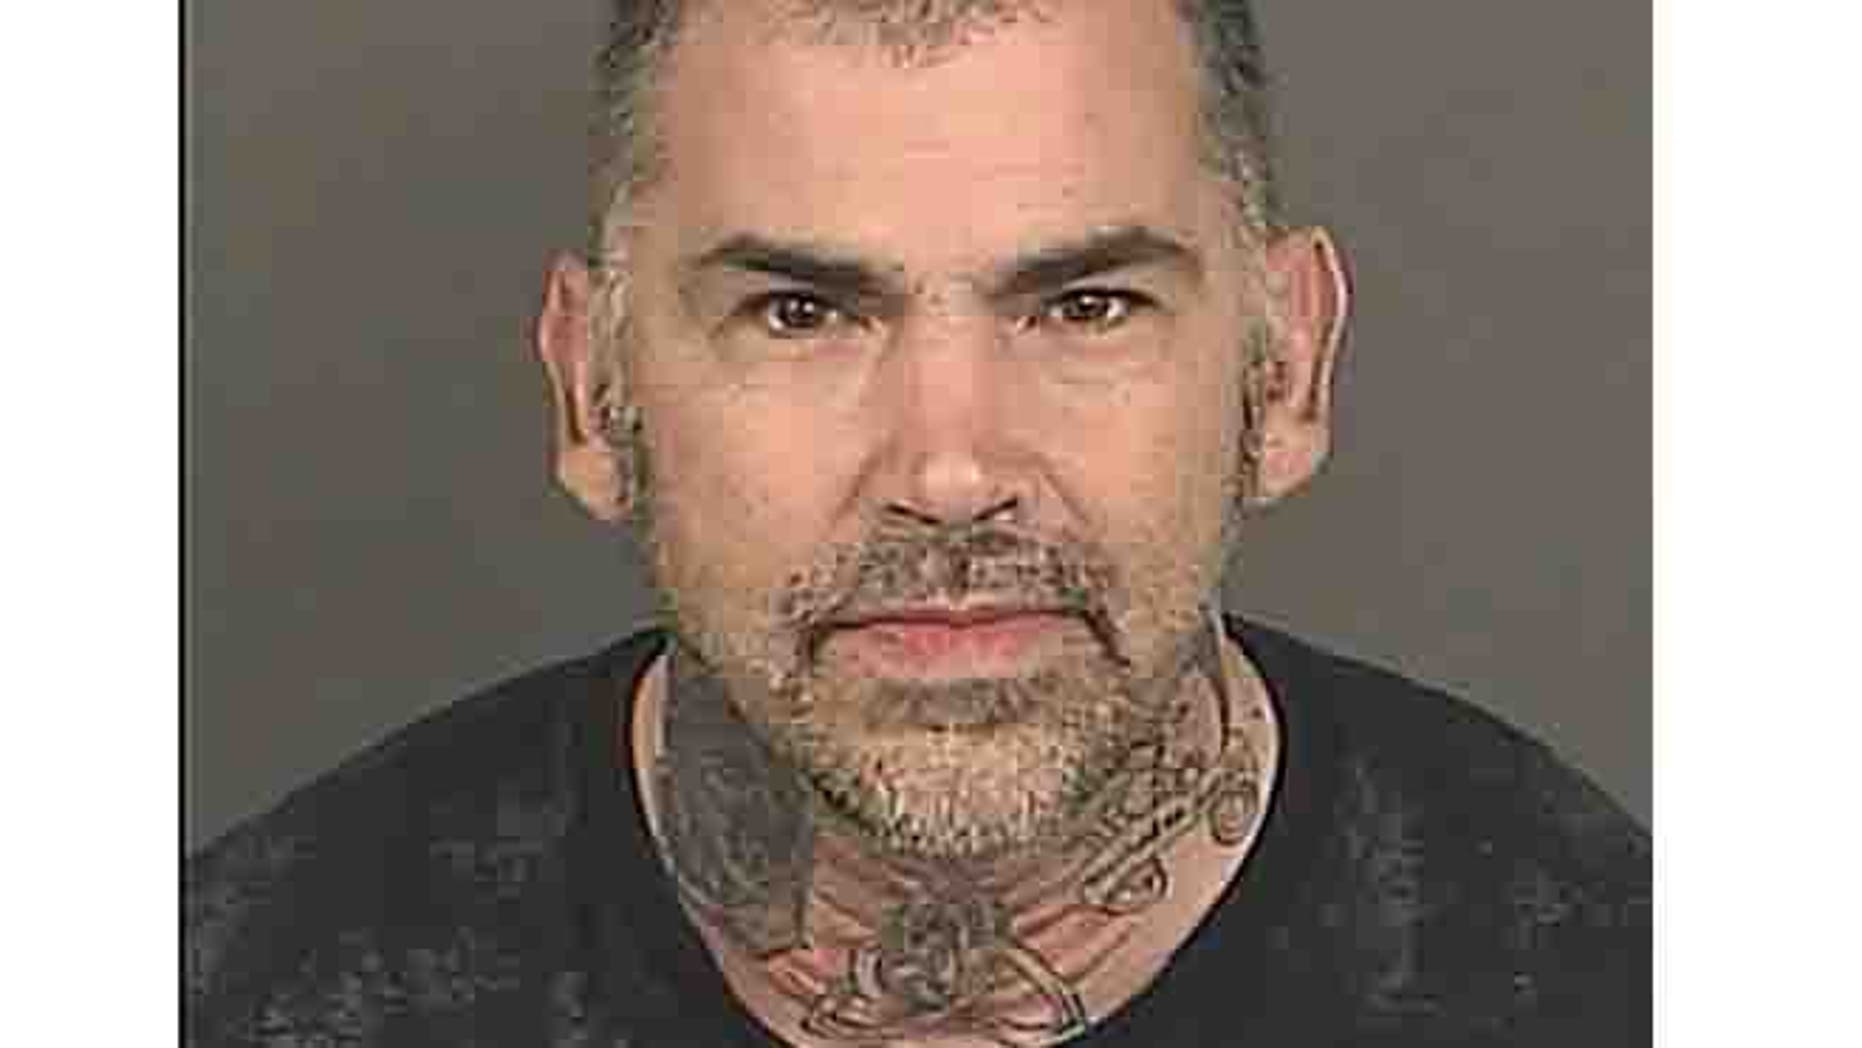 Jan. 29, 2014: In this file photo provided by the Denver District Attorney's Office suspect Michael Todd Abromovich is pictured.